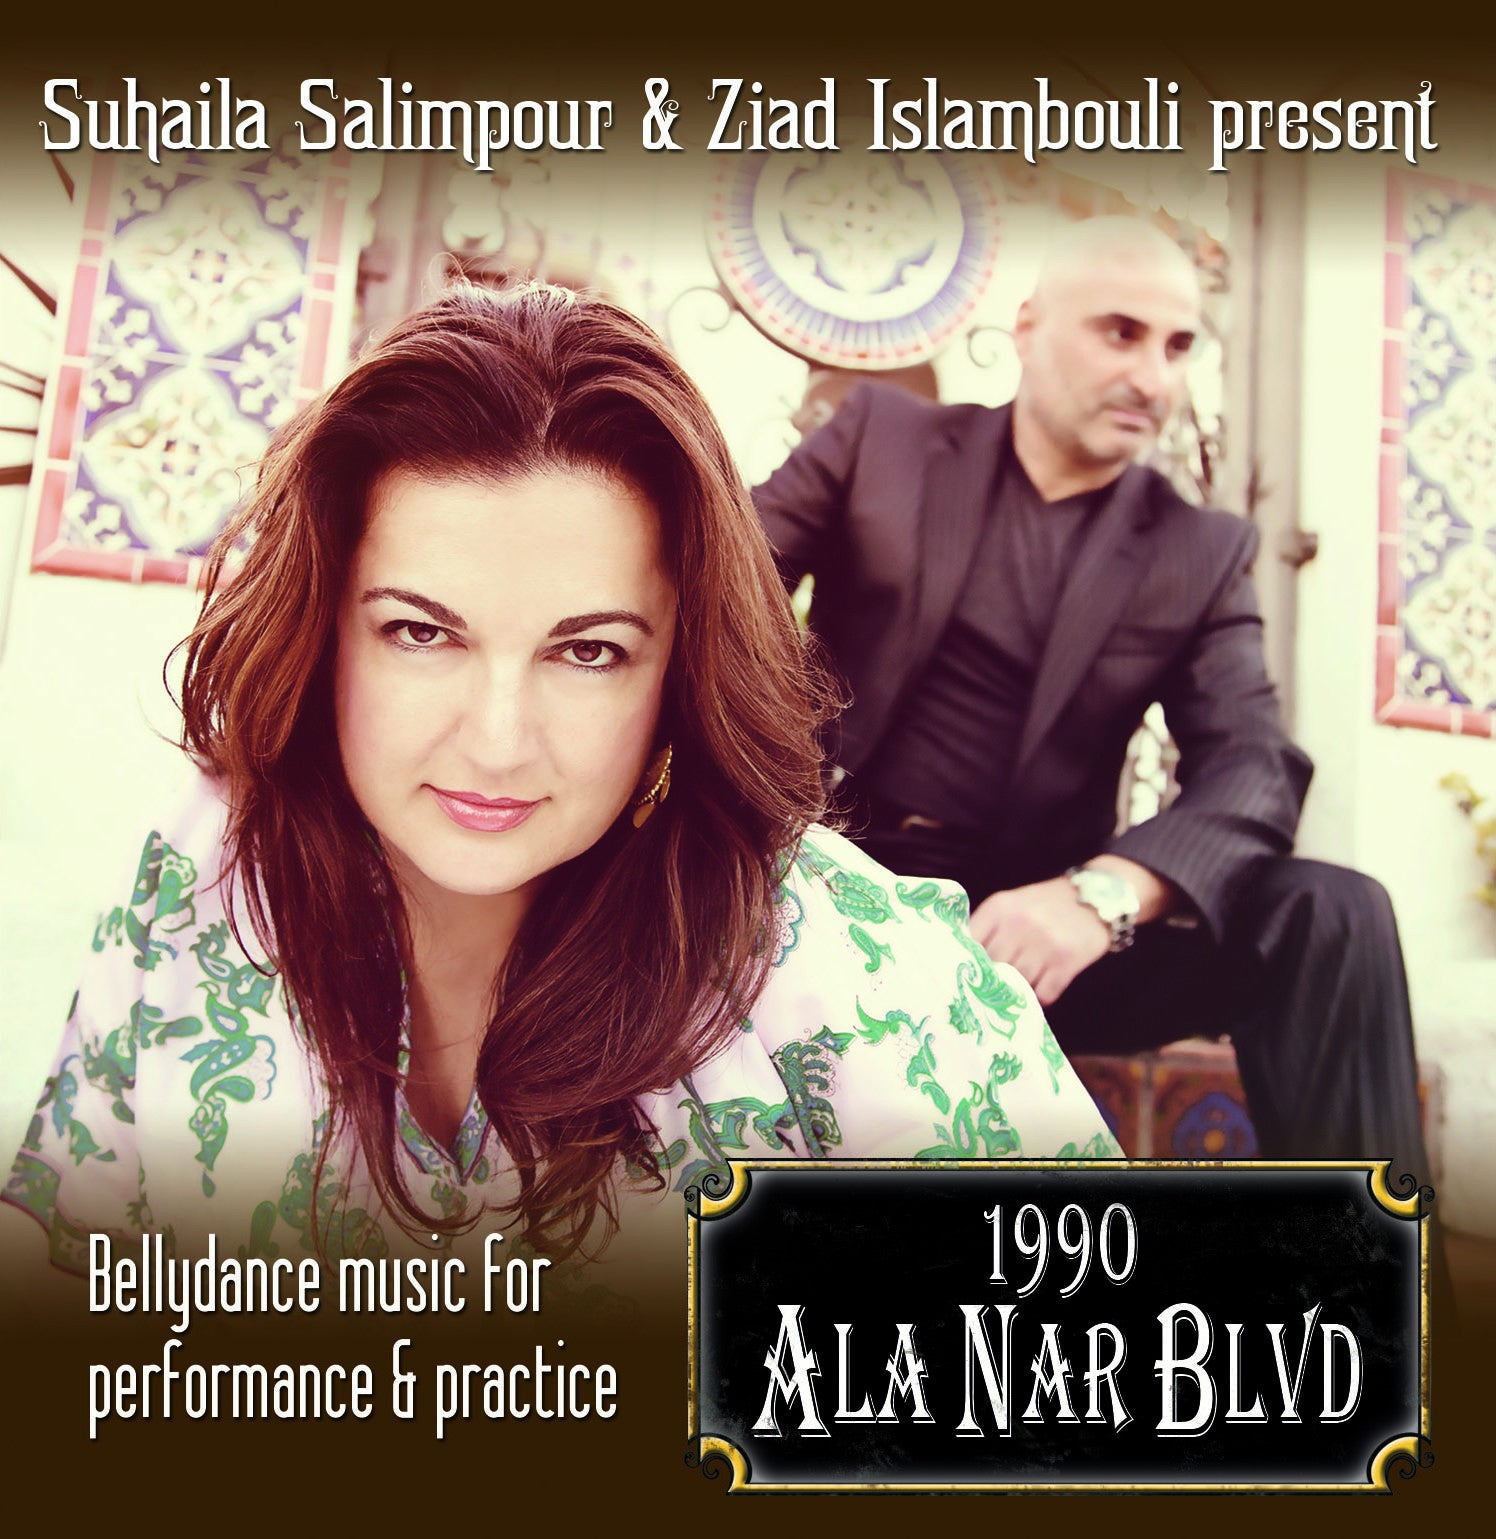 Ala Nar Percussion Music Loops Downloads Salimpour Store